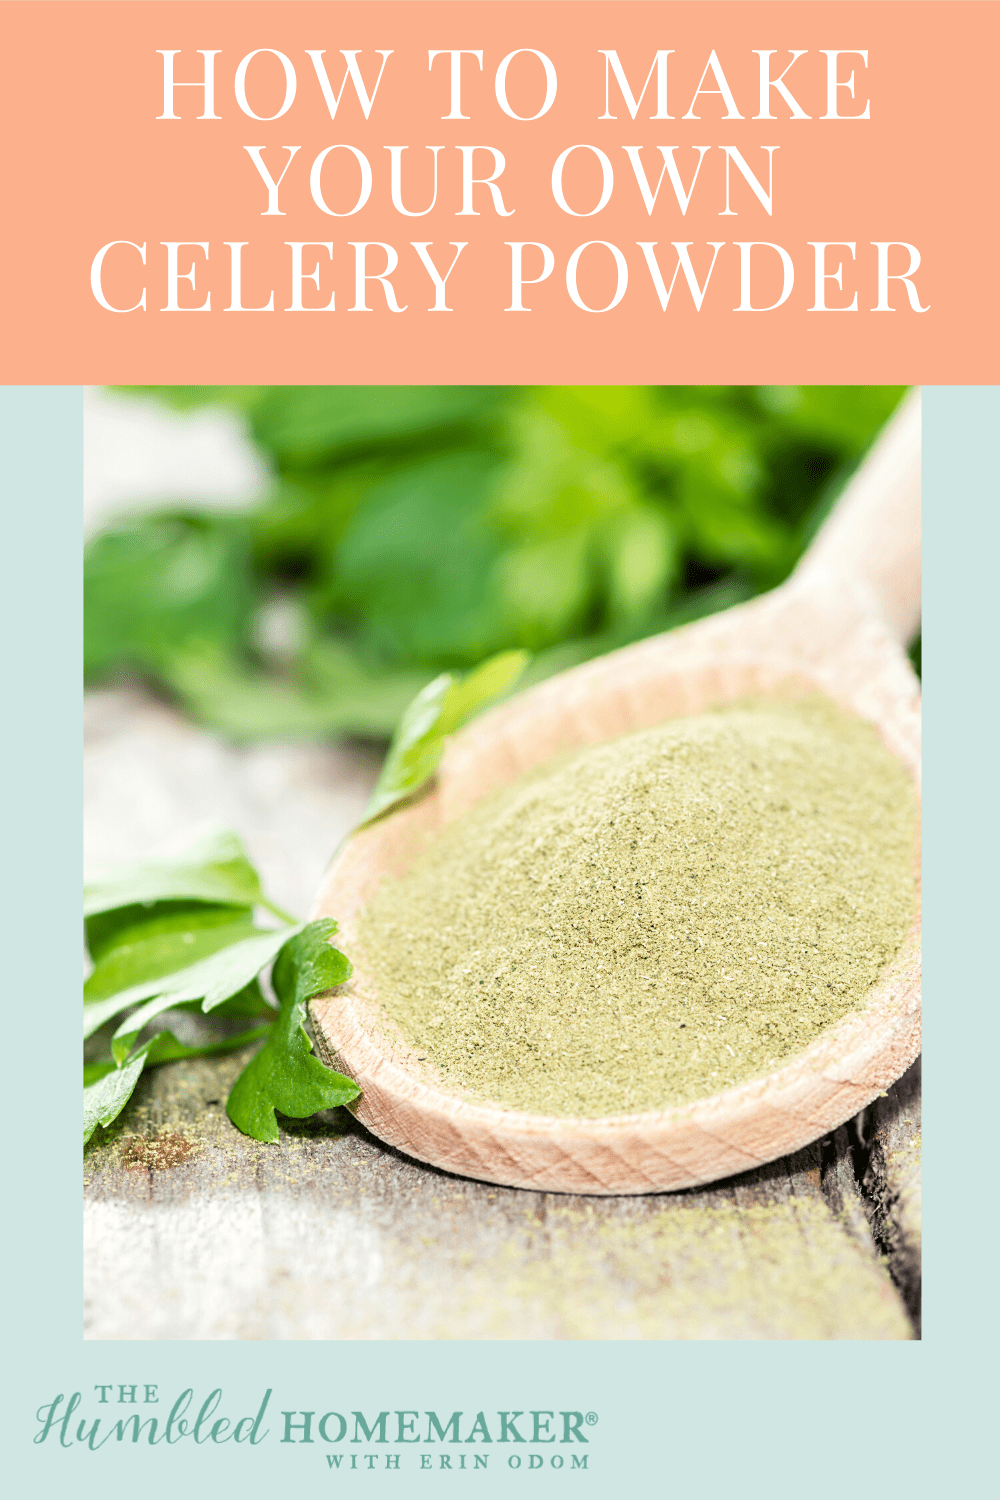 If you love homemade seasonings and spice mixes, add celery powder to the list! This simple tutorial will show you how to make your own DIY celery powder.